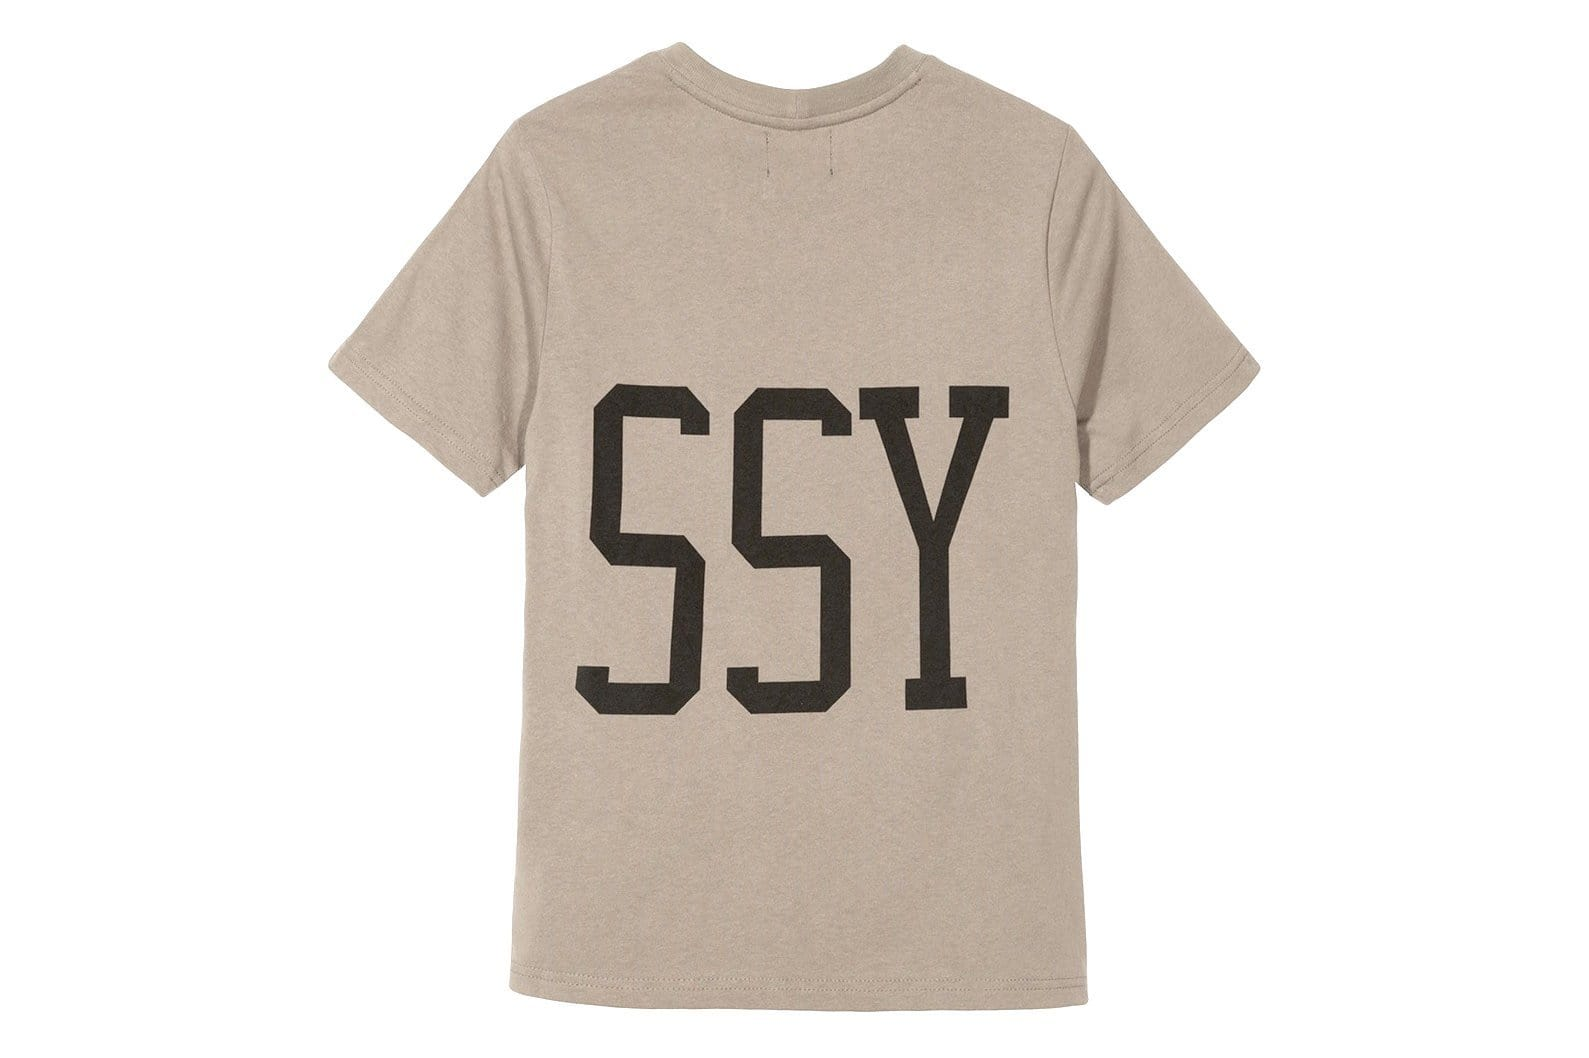 ALLEN BIG SCALE TEE - 214486 WOMENS SOFTGOODS STUSSY